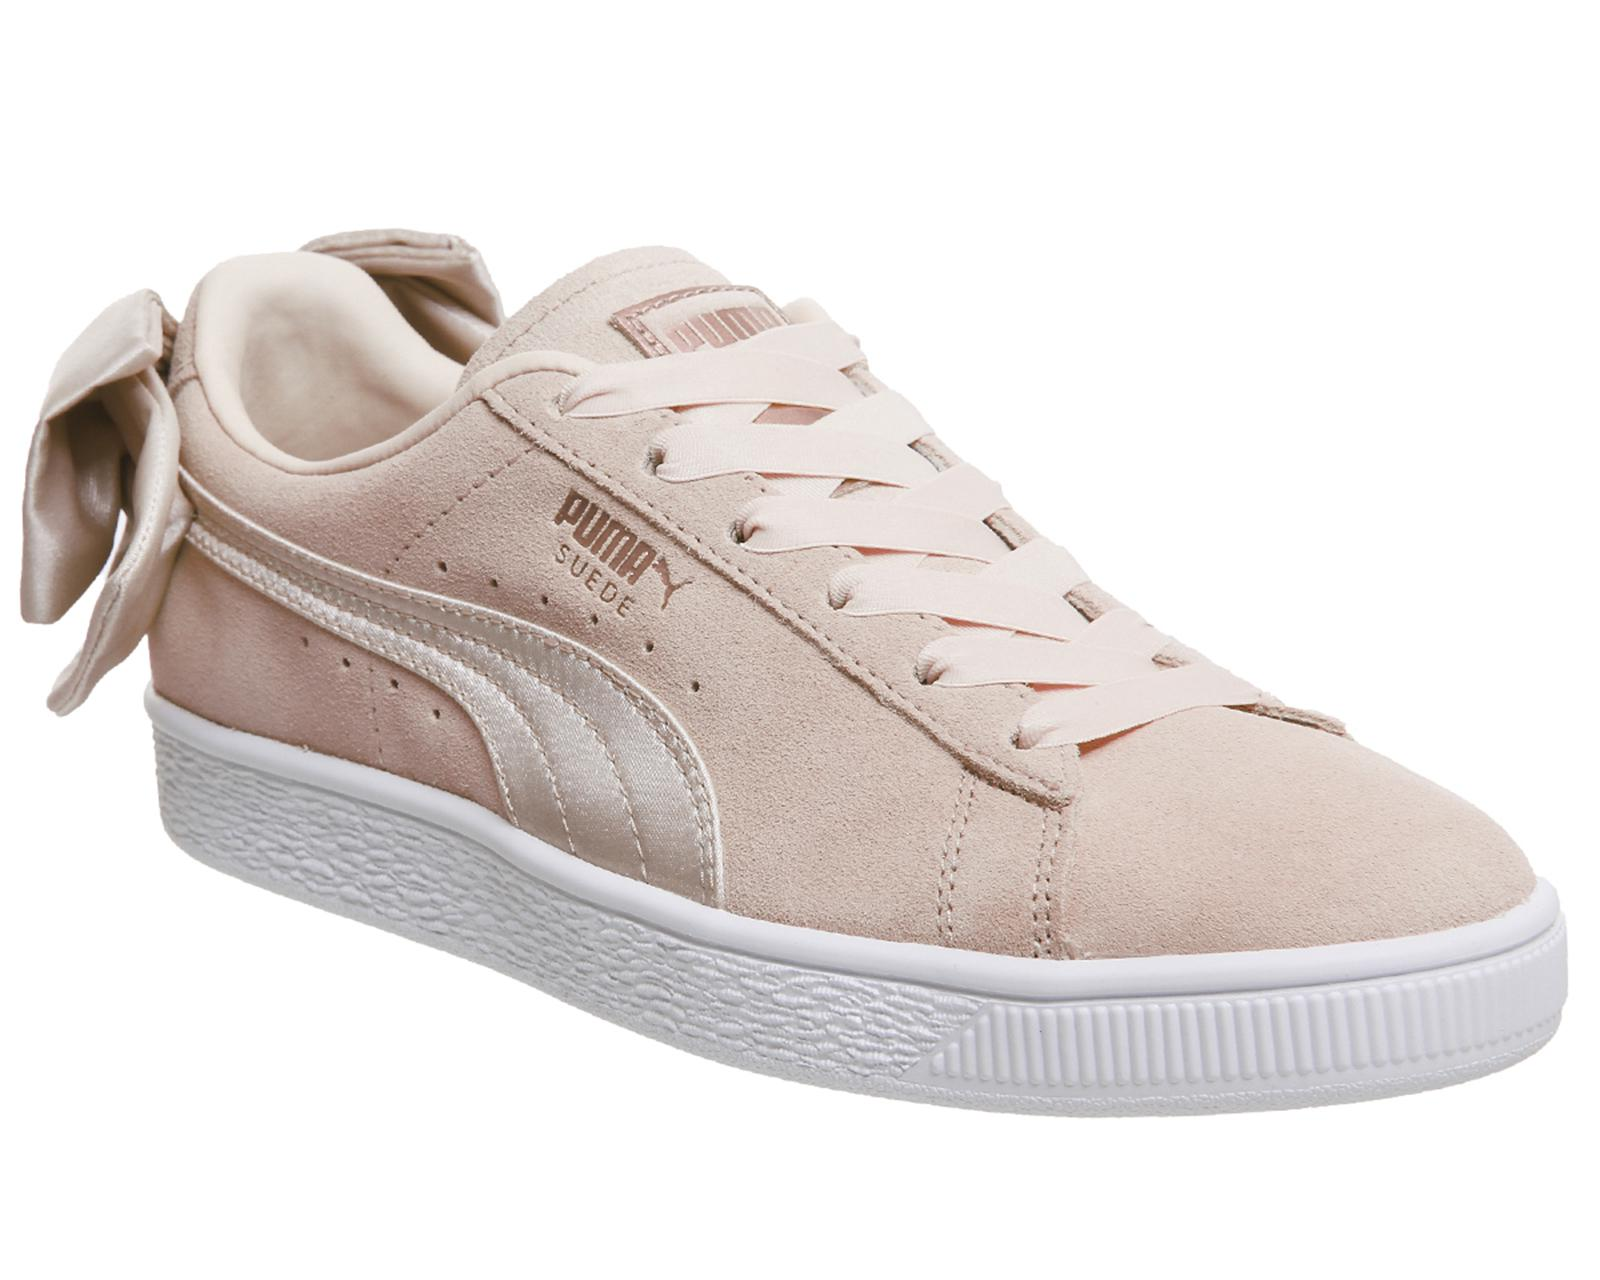 cheap finishline Puma Suede Bow Trainers In White top quality for sale outlet 100% guaranteed R4siRUx